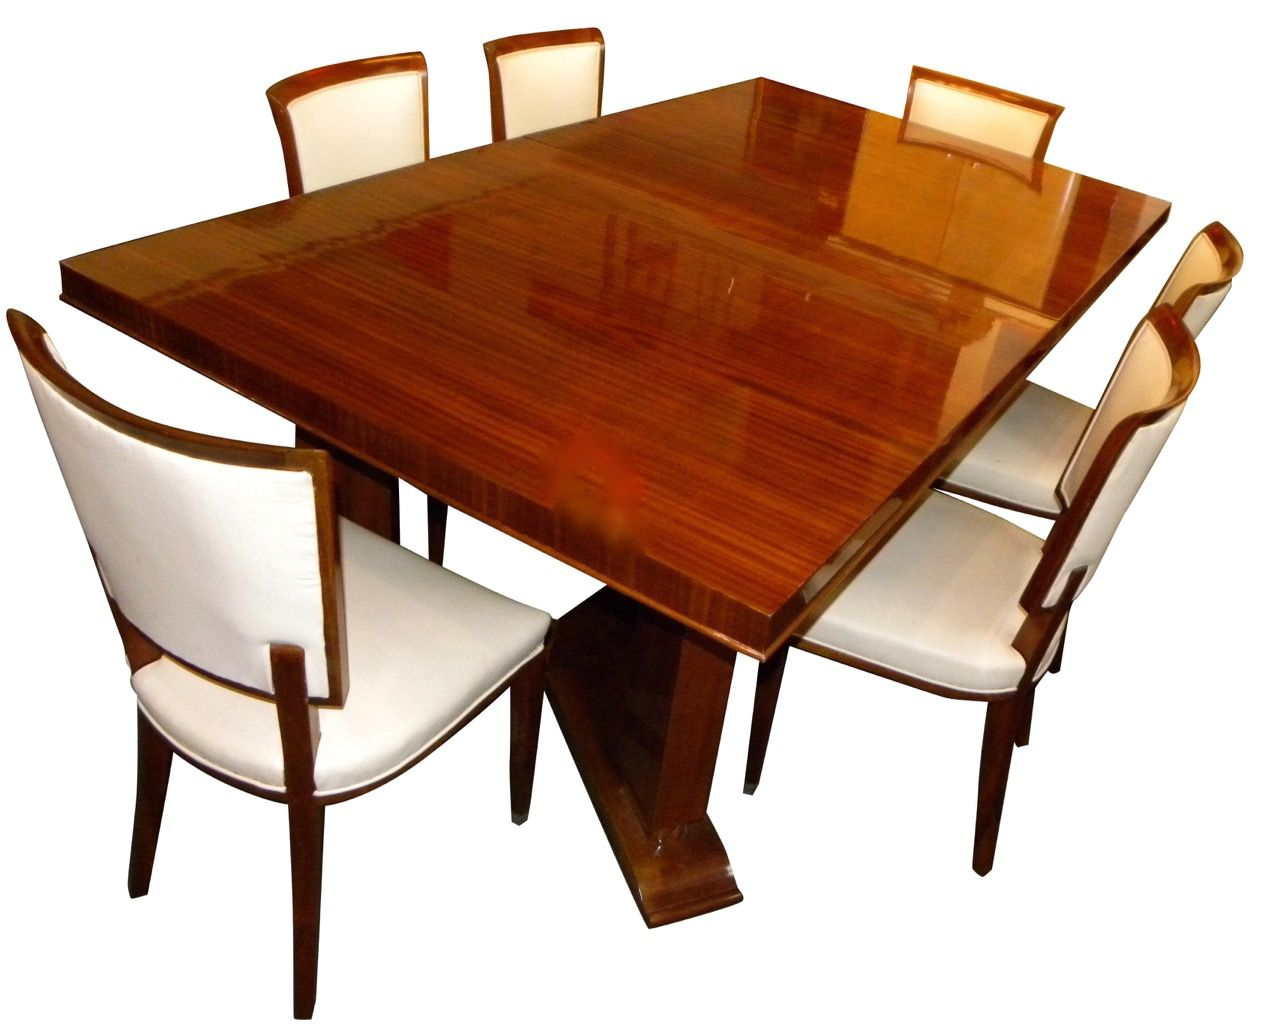 Jules Leleu Dining Room Table & Chairs 1937 Paris